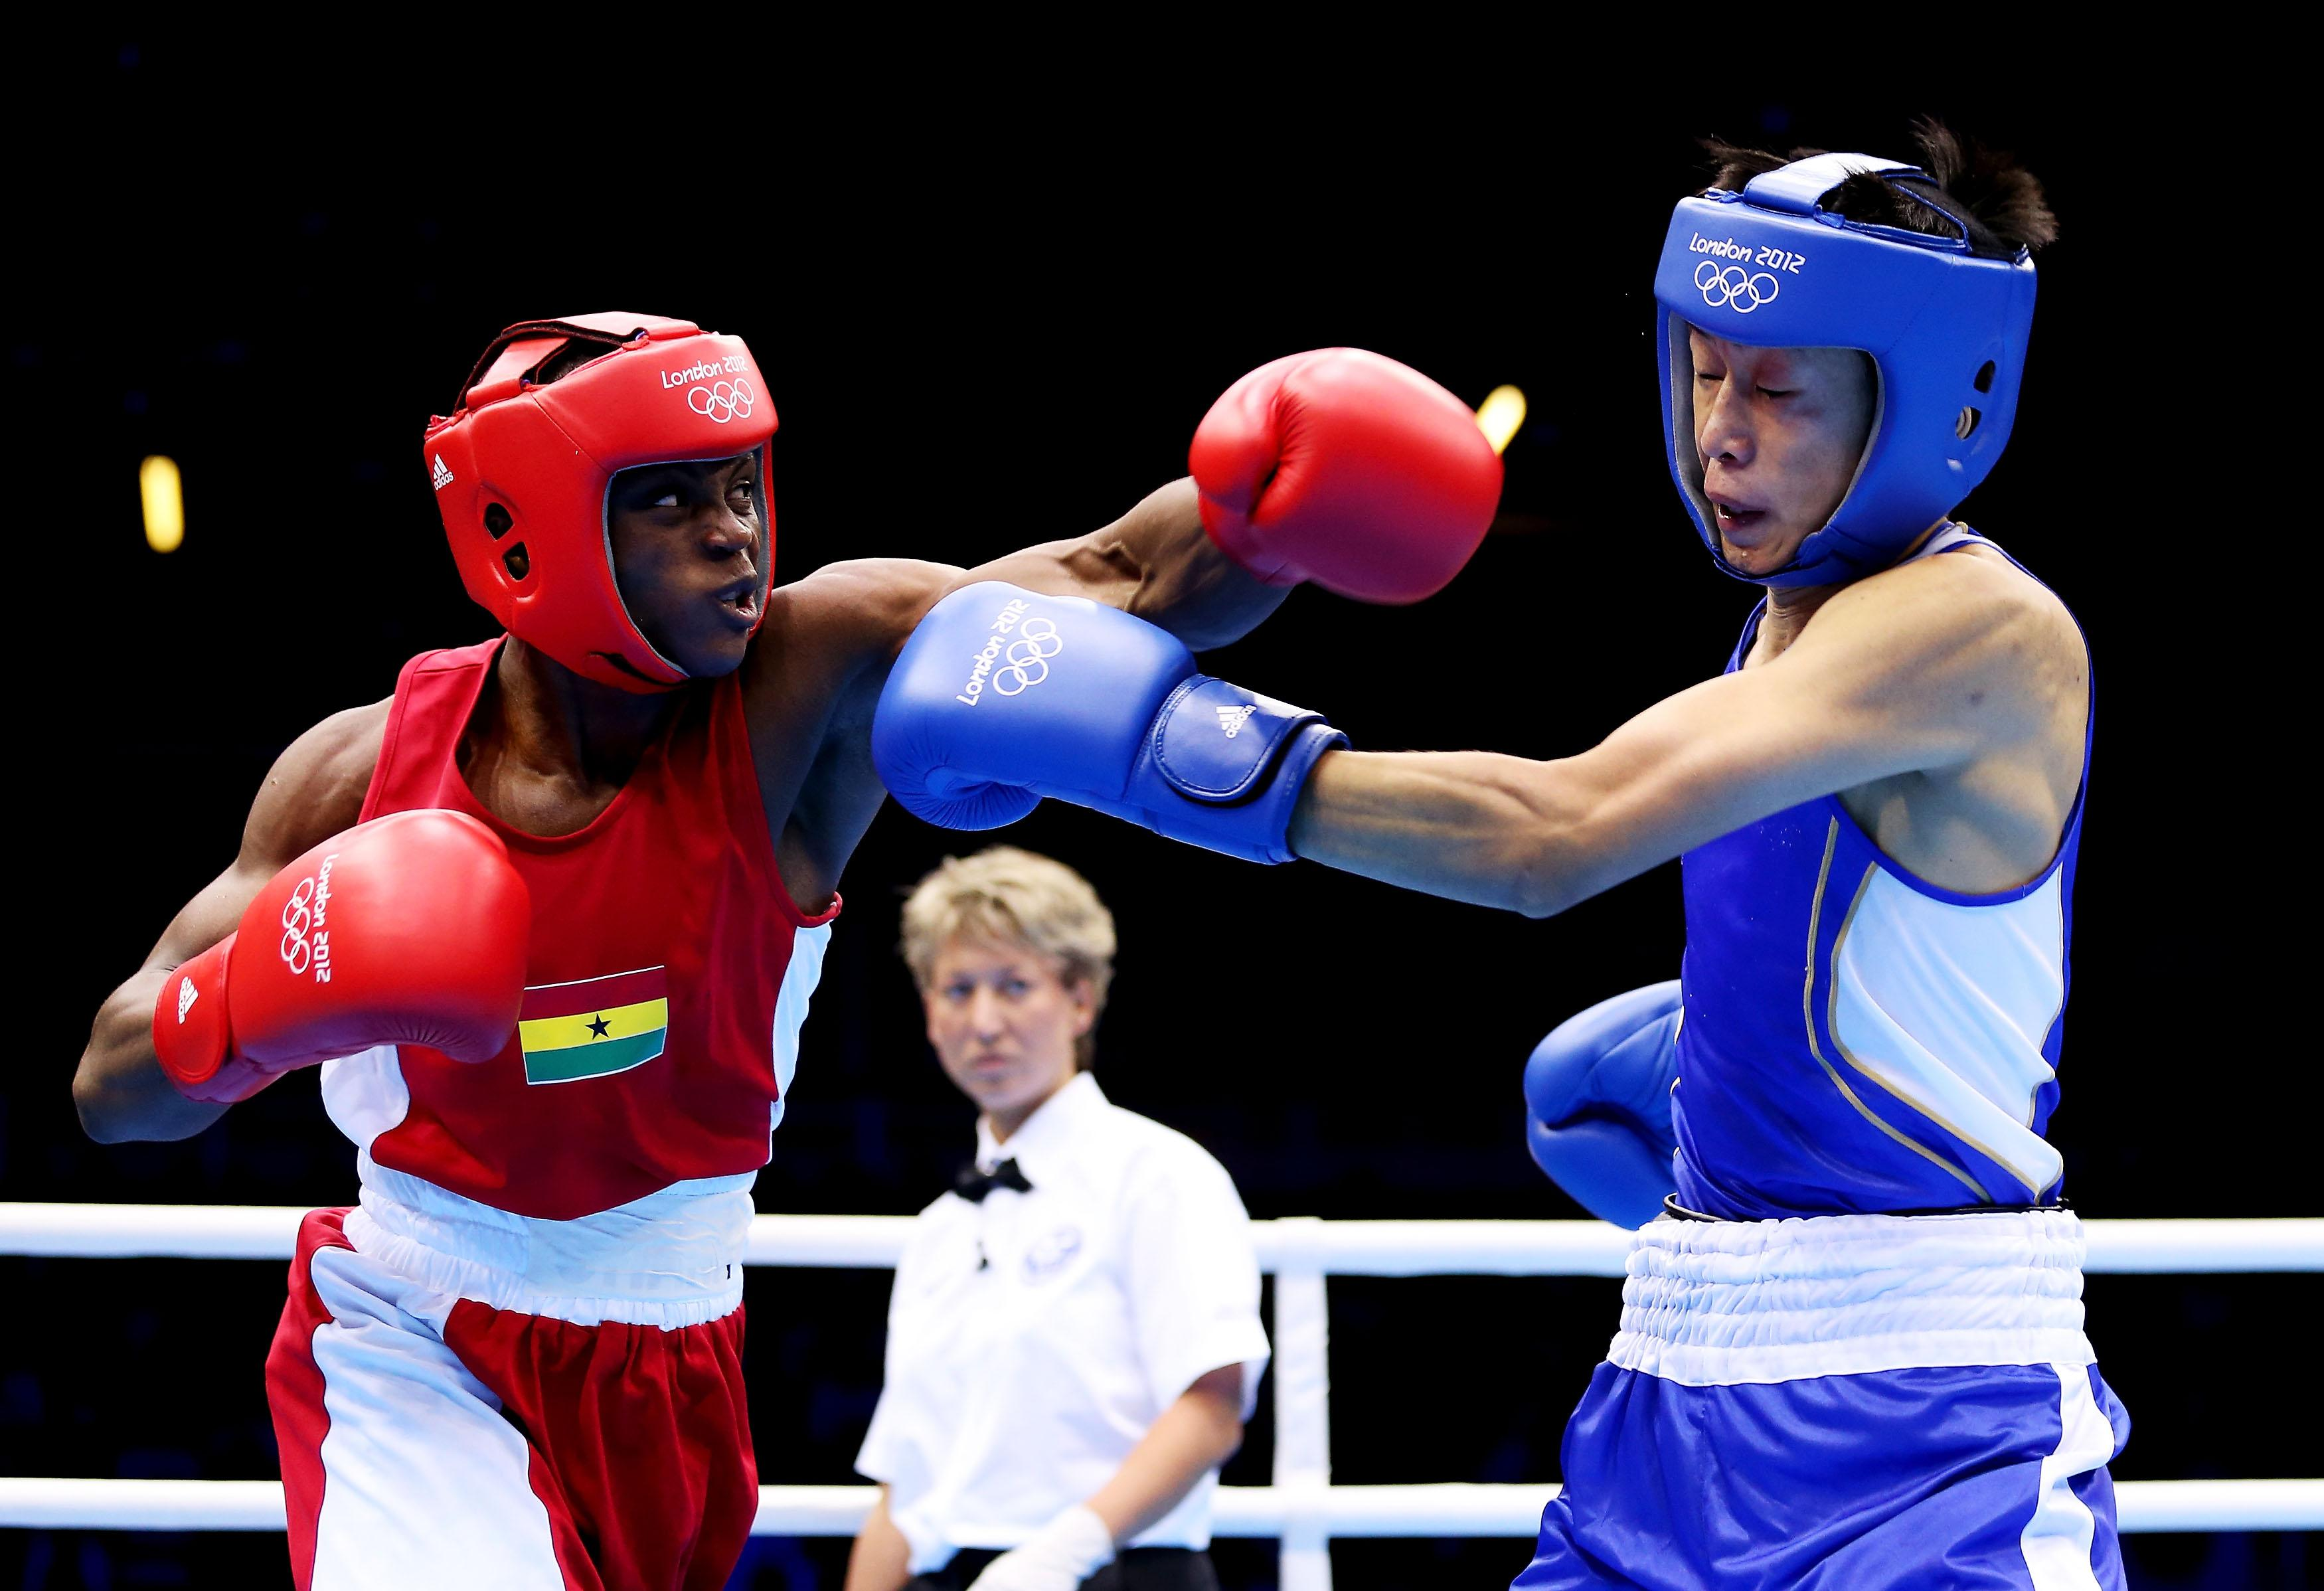 Dogboe dominated the London 2012 fight but was the victim of tragedy and turned pro soon after